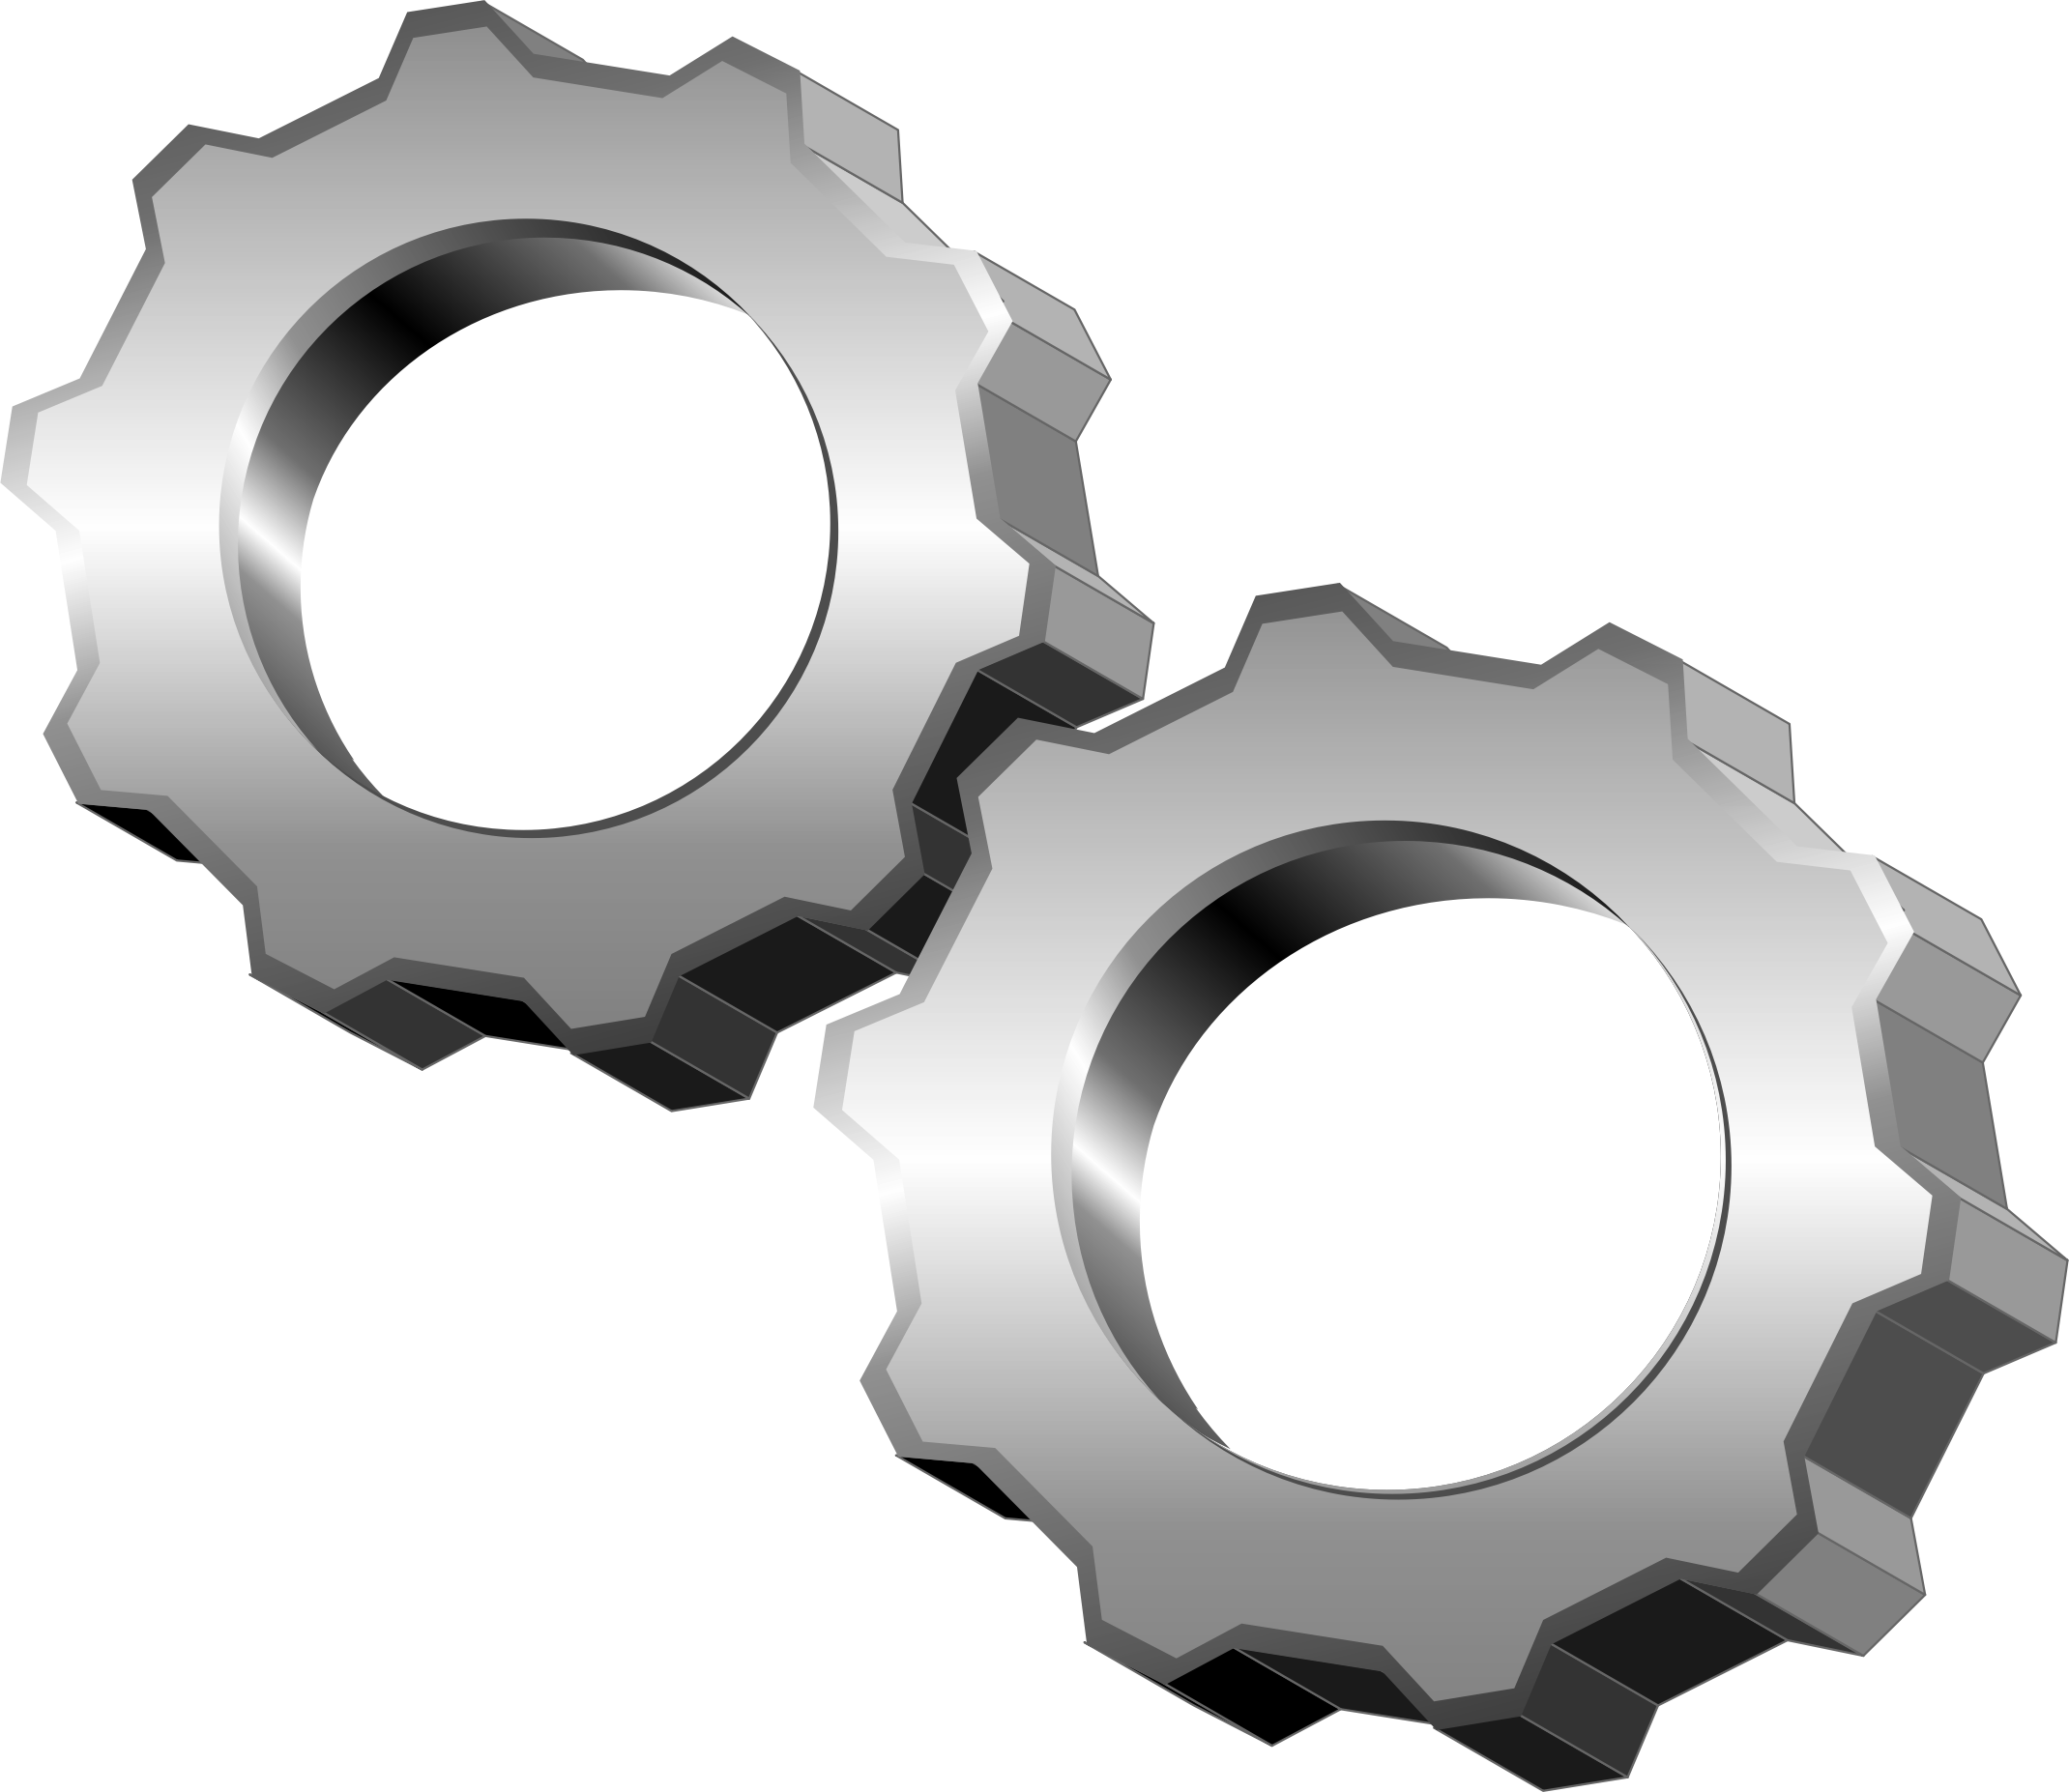 Big image png. Gears clipart linked